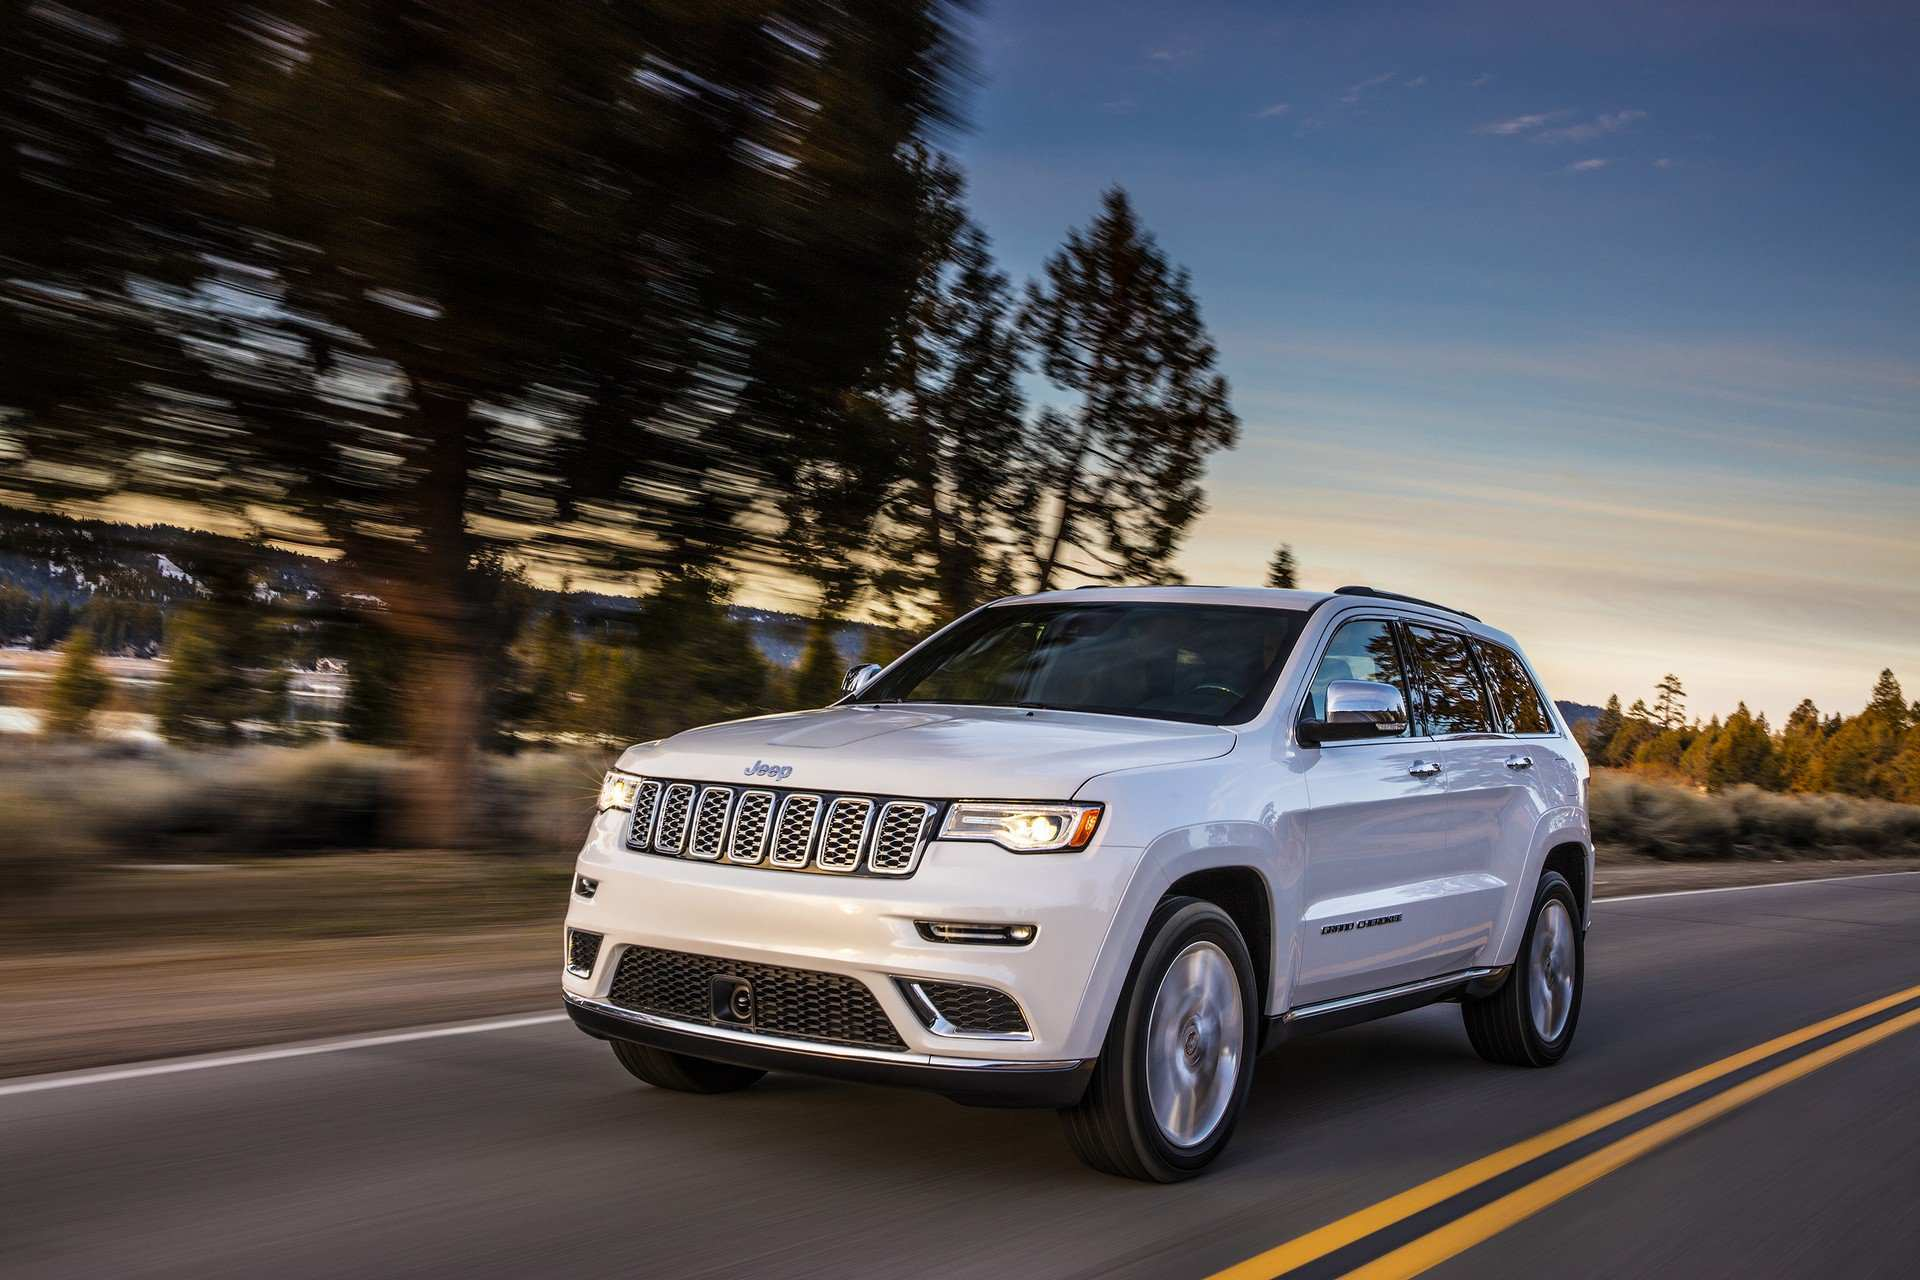 32 New Best 2019 Jeep Grand Cherokee Limited X New Interior Engine by Best 2019 Jeep Grand Cherokee Limited X New Interior